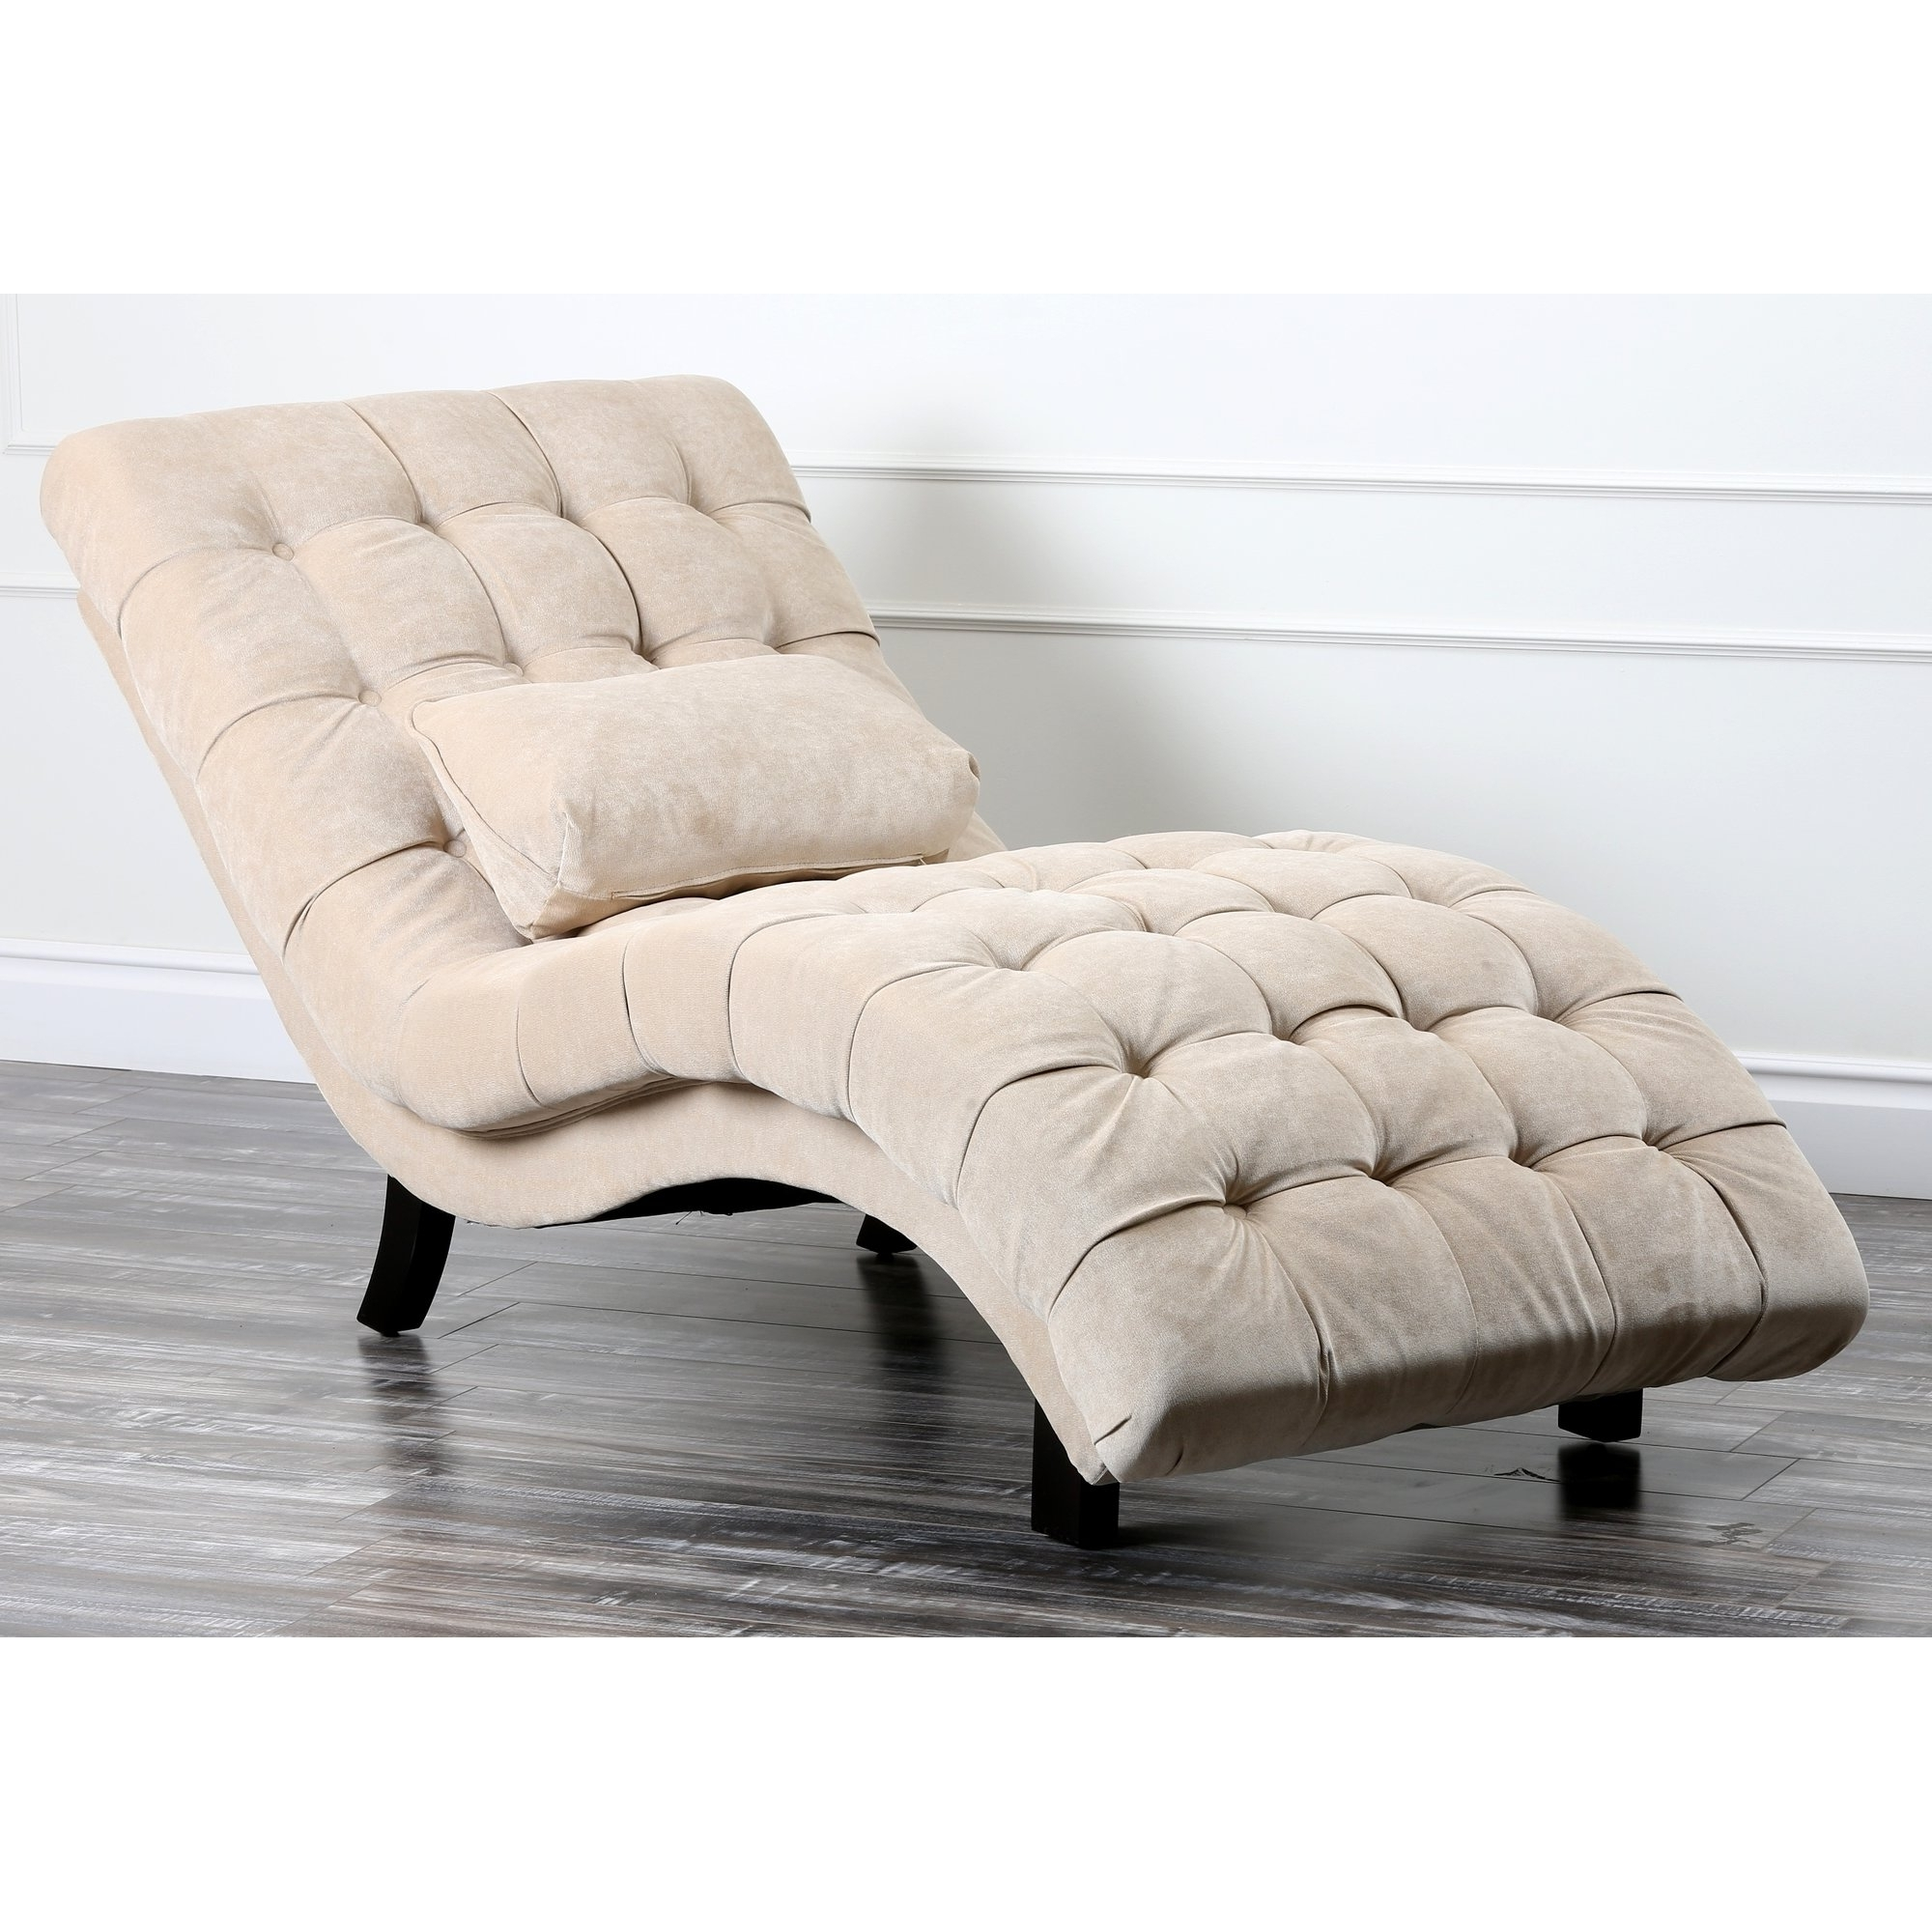 Popular Comfy Chaise Lounge Chairs • Lounge Chairs Ideas Regarding Chaise Lounge Chairs For Bedroom (View 12 of 15)